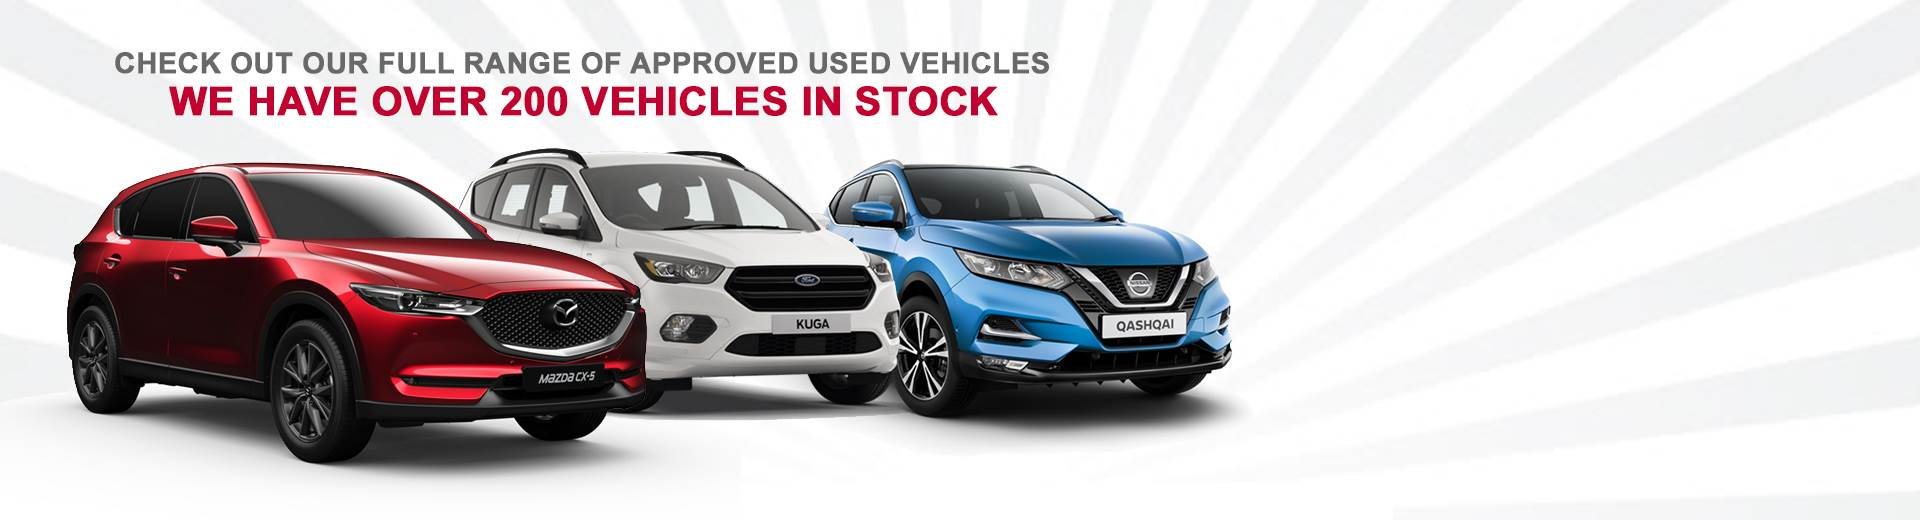 Check out our wide range of used vehicles in stock. Don't forget we stock many makes and models.